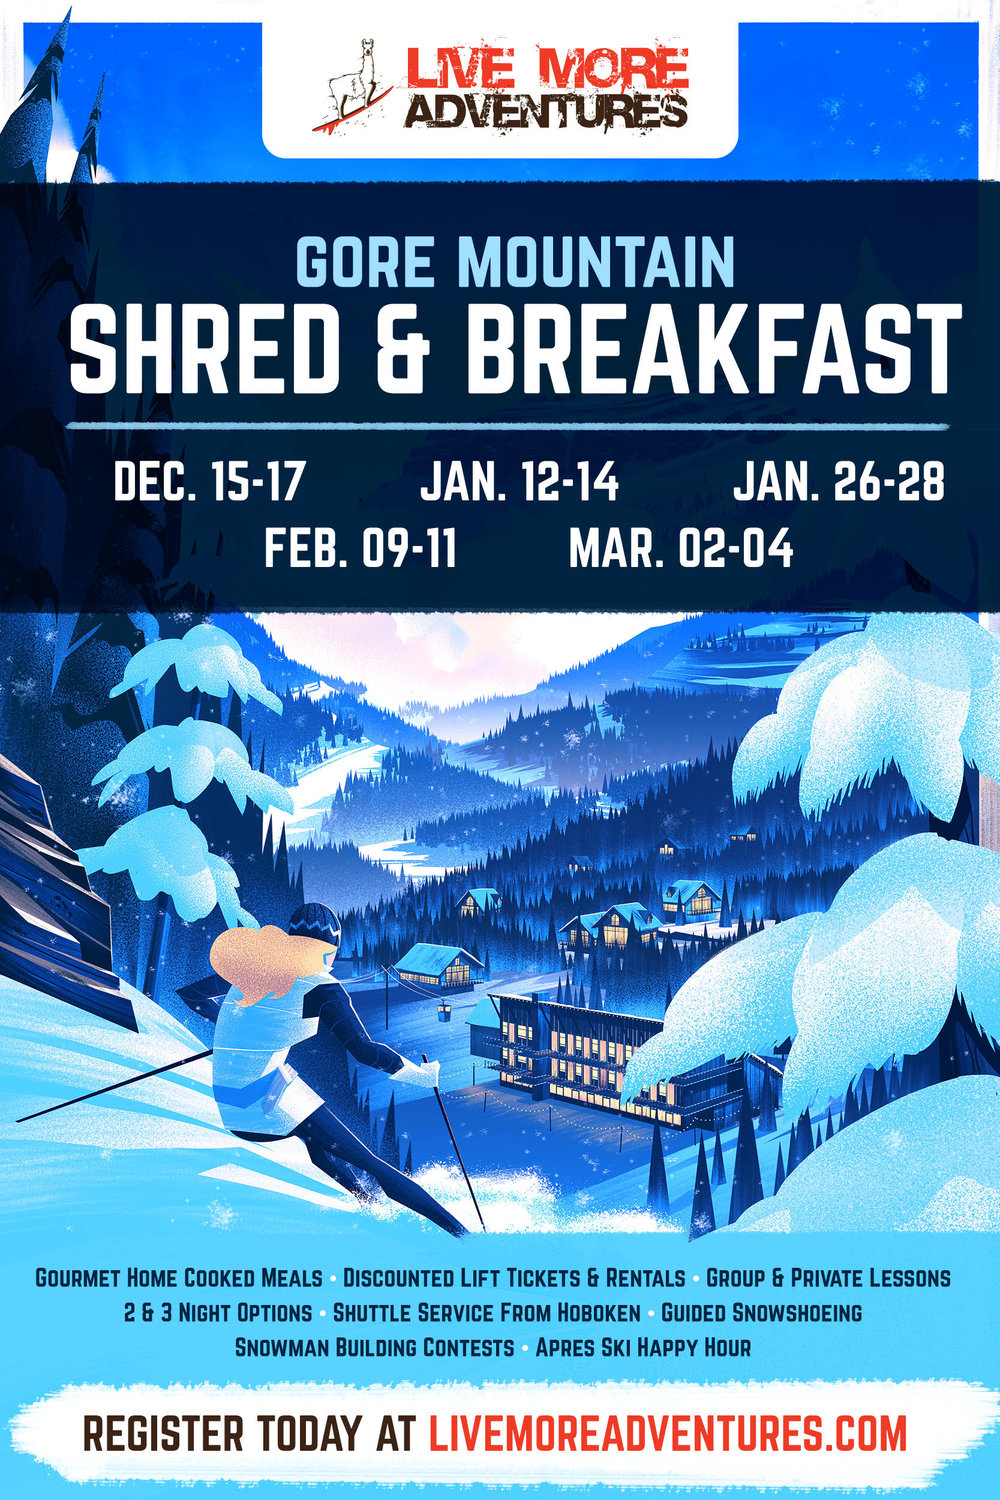 Gore_shred_breakfast_flyer_winter_17:18_flyer.jpg